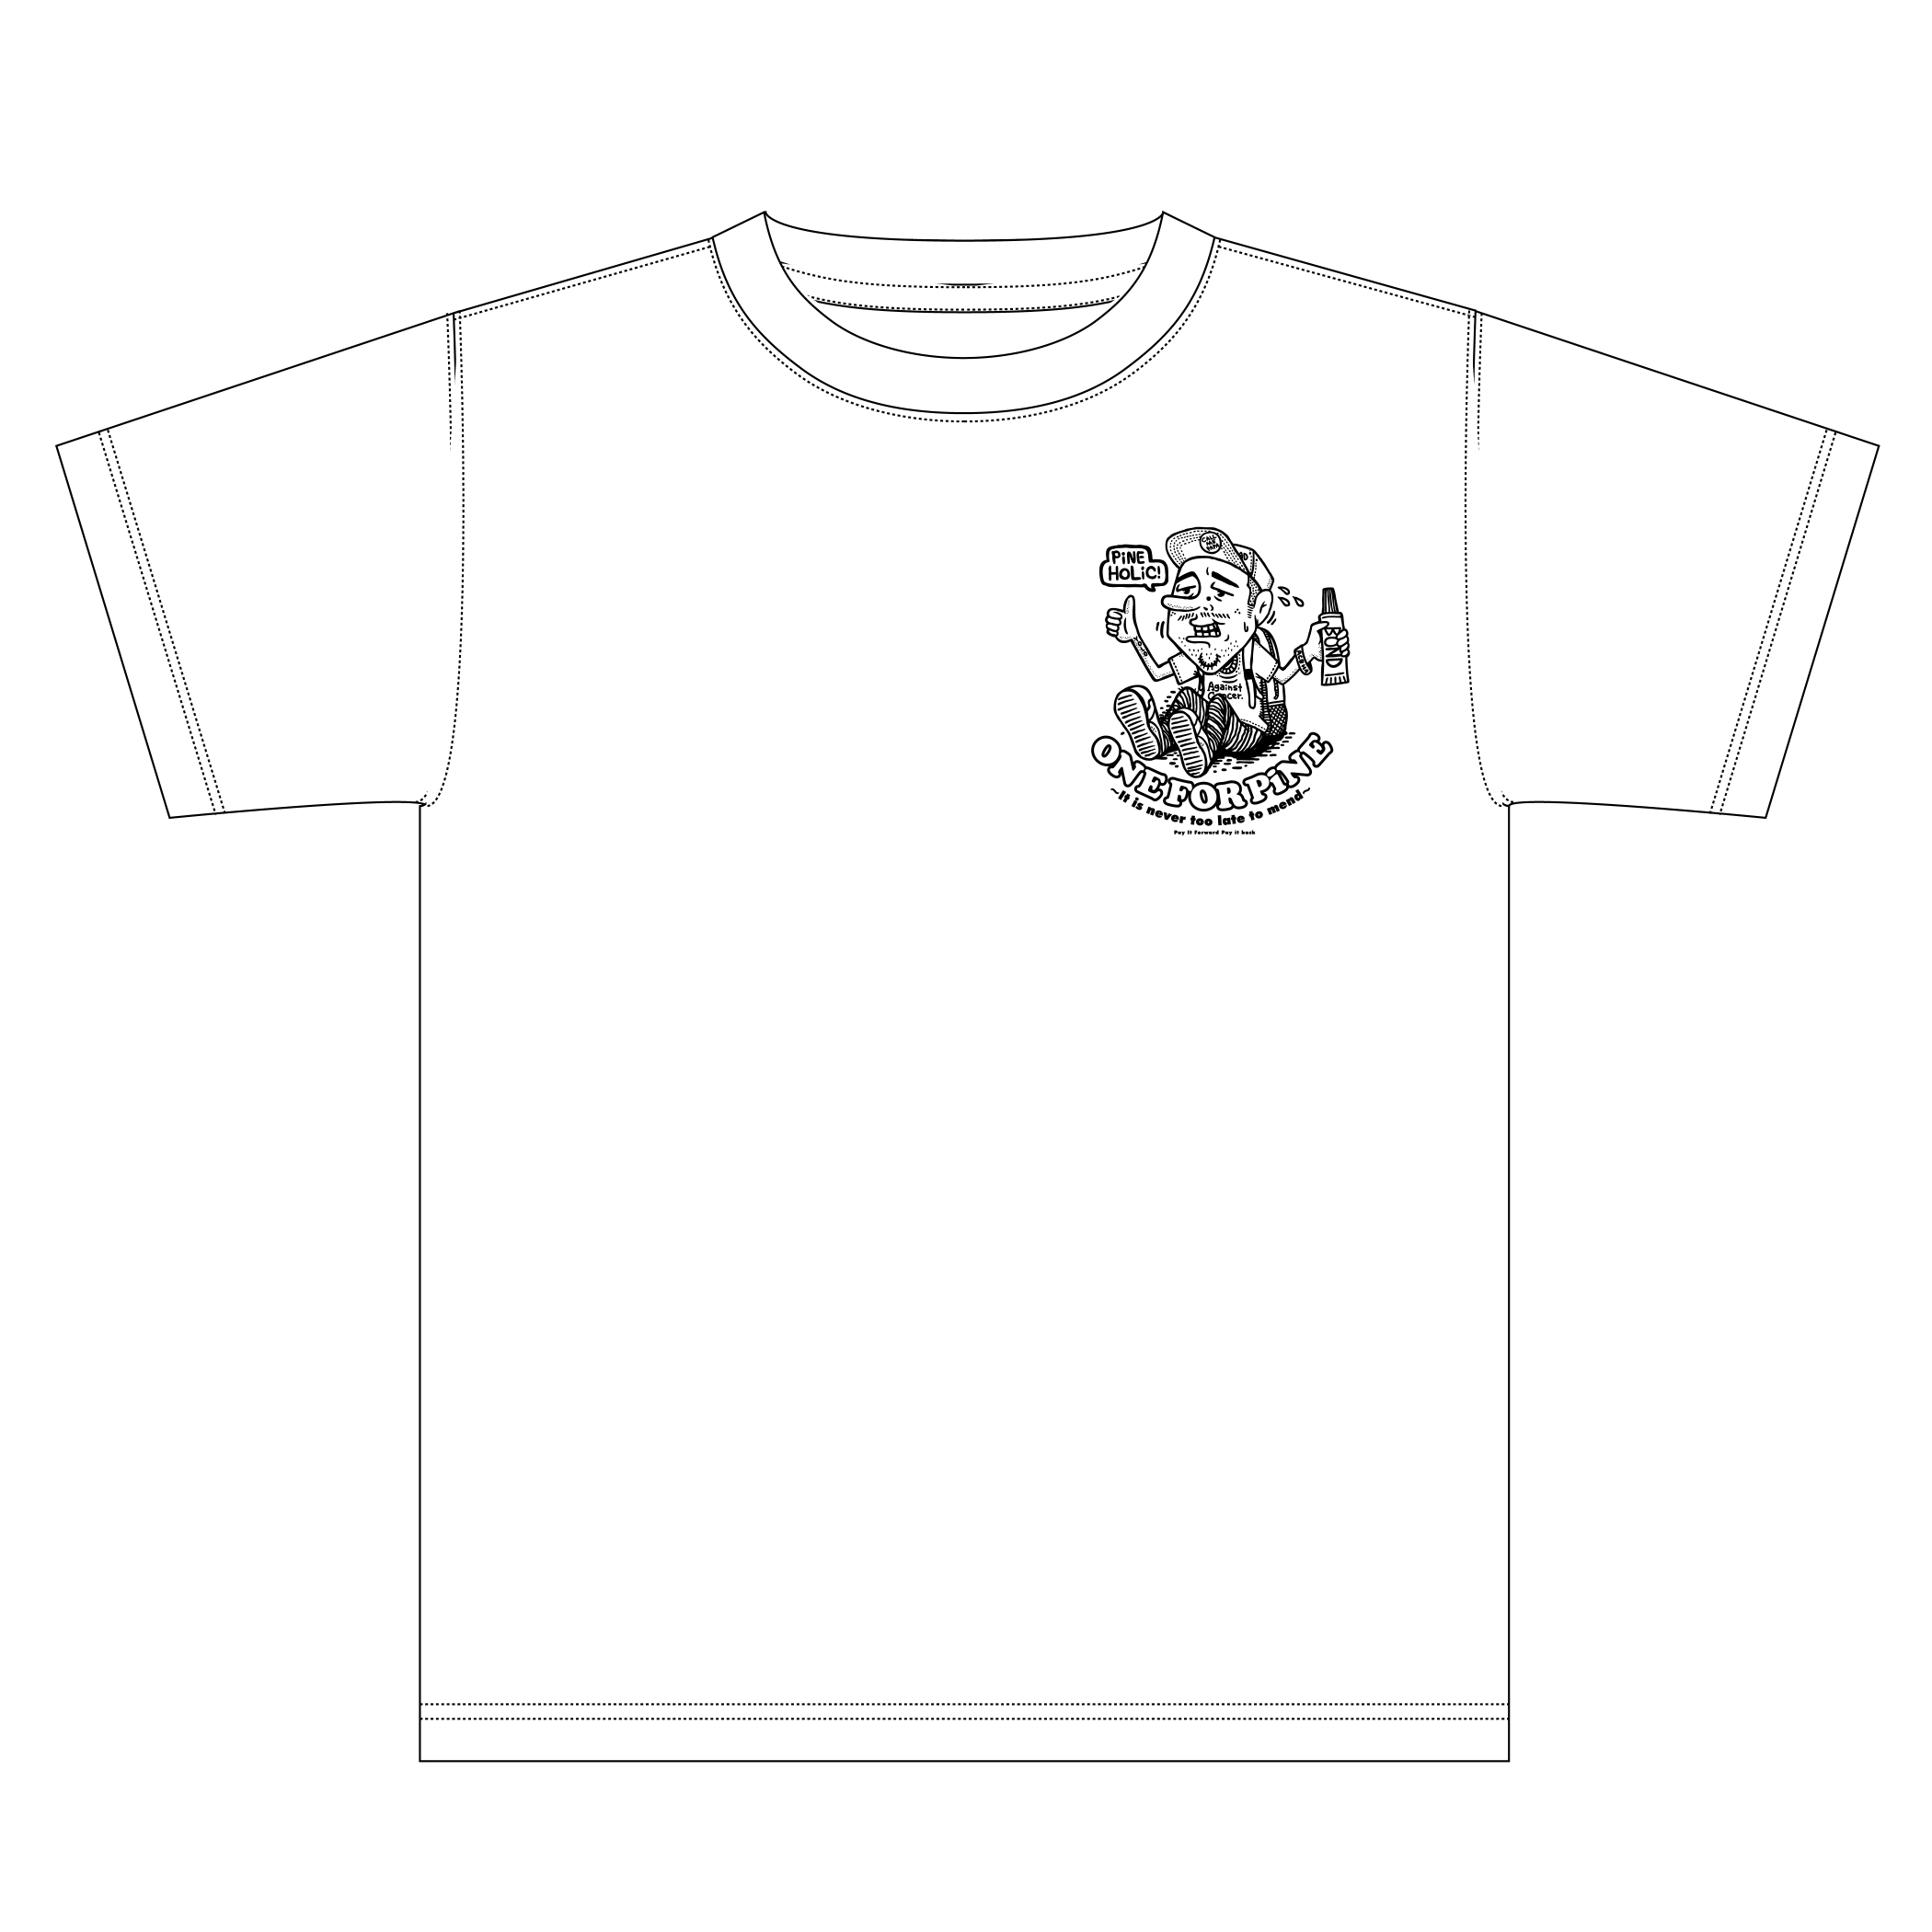 ONE FOR PiNE ロゴ・チャリティーTシャツ